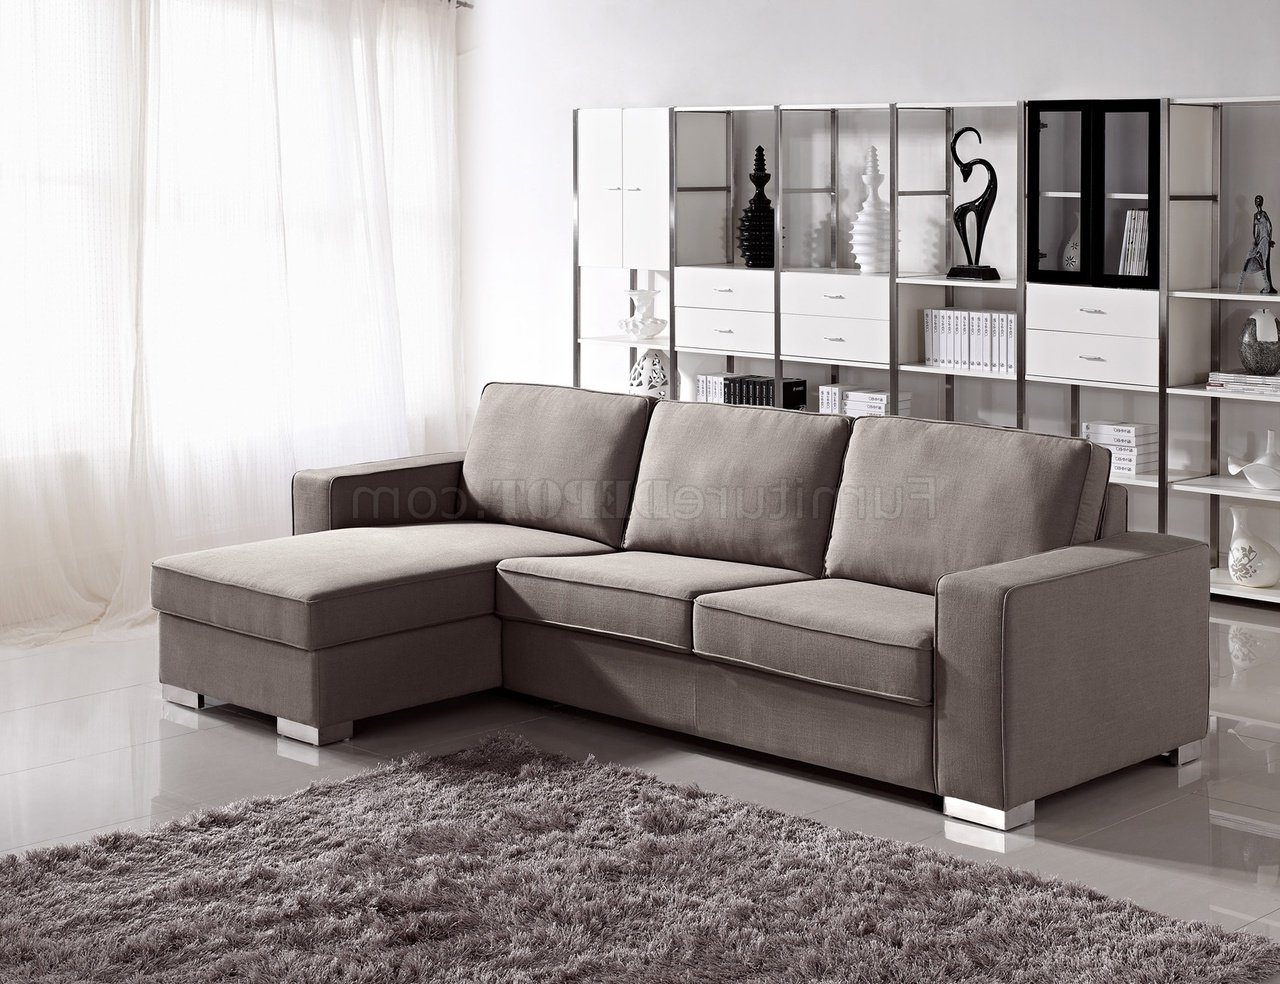 Favorite Convertible Sectional Sofas With 1264 Sectional Sofa Bed Convertible In Fabricesf (View 11 of 15)